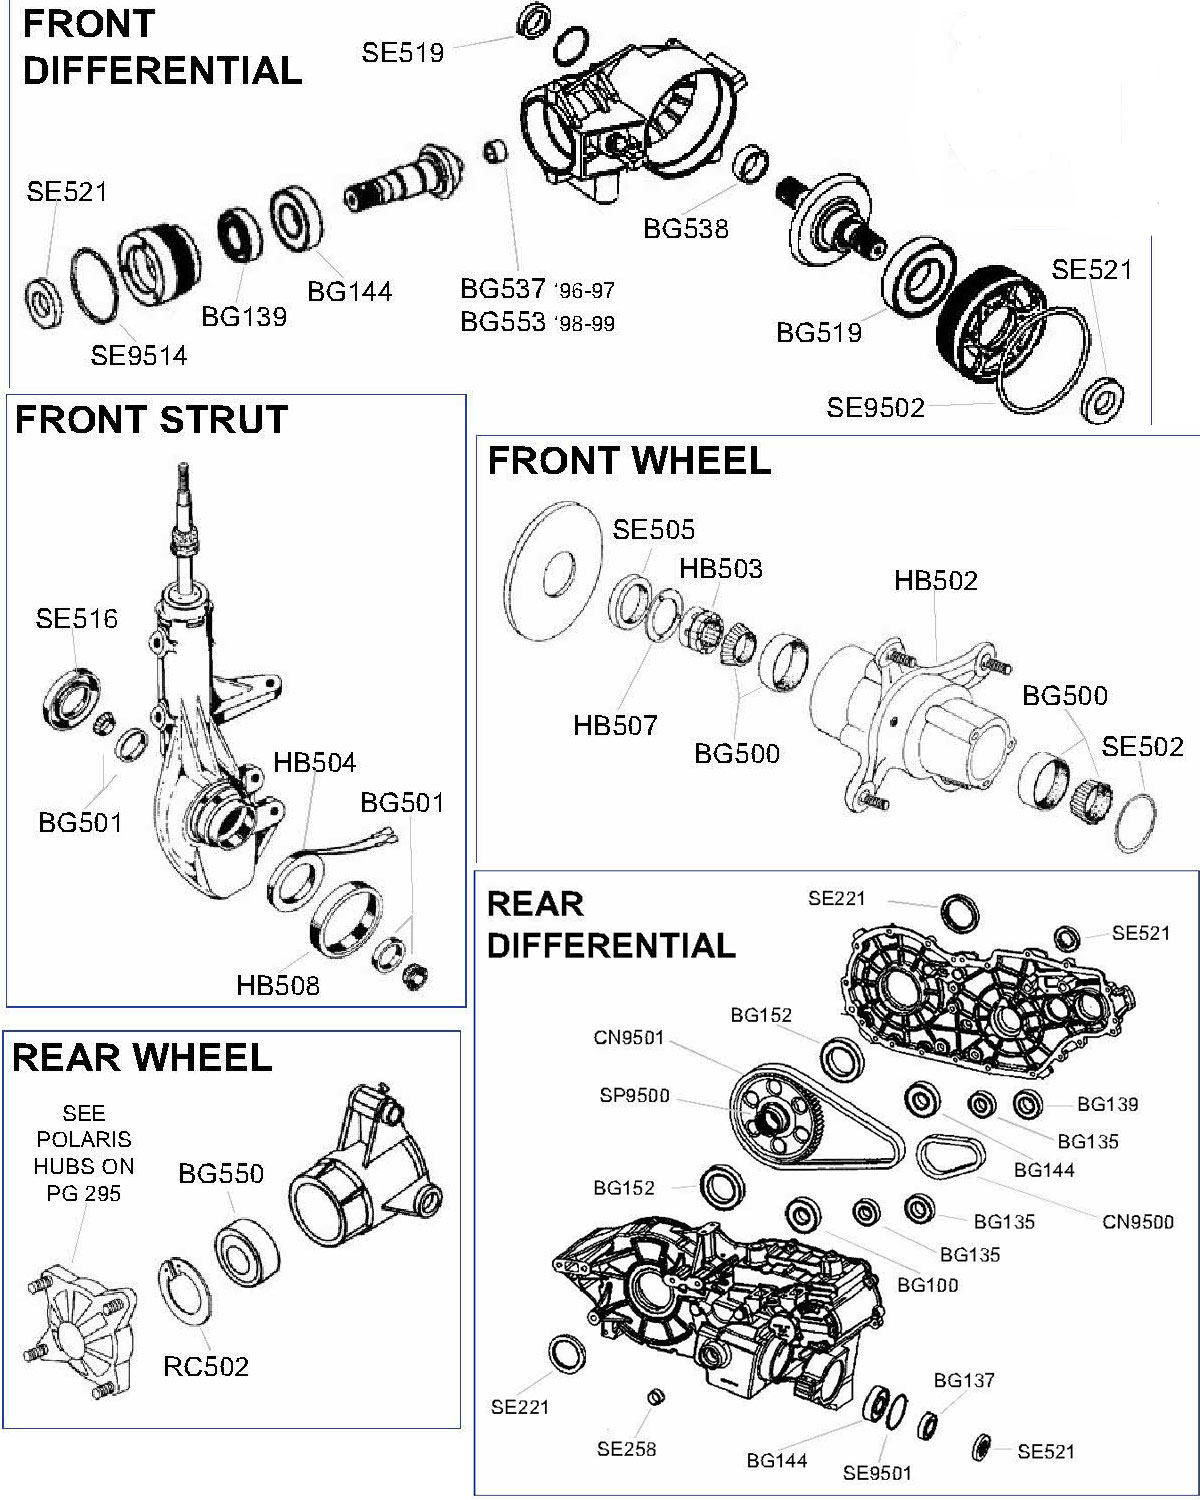 PolarisP7 polaris sportsman parts diagram 1997 polaris sportsman 500 wiring diagram at creativeand.co